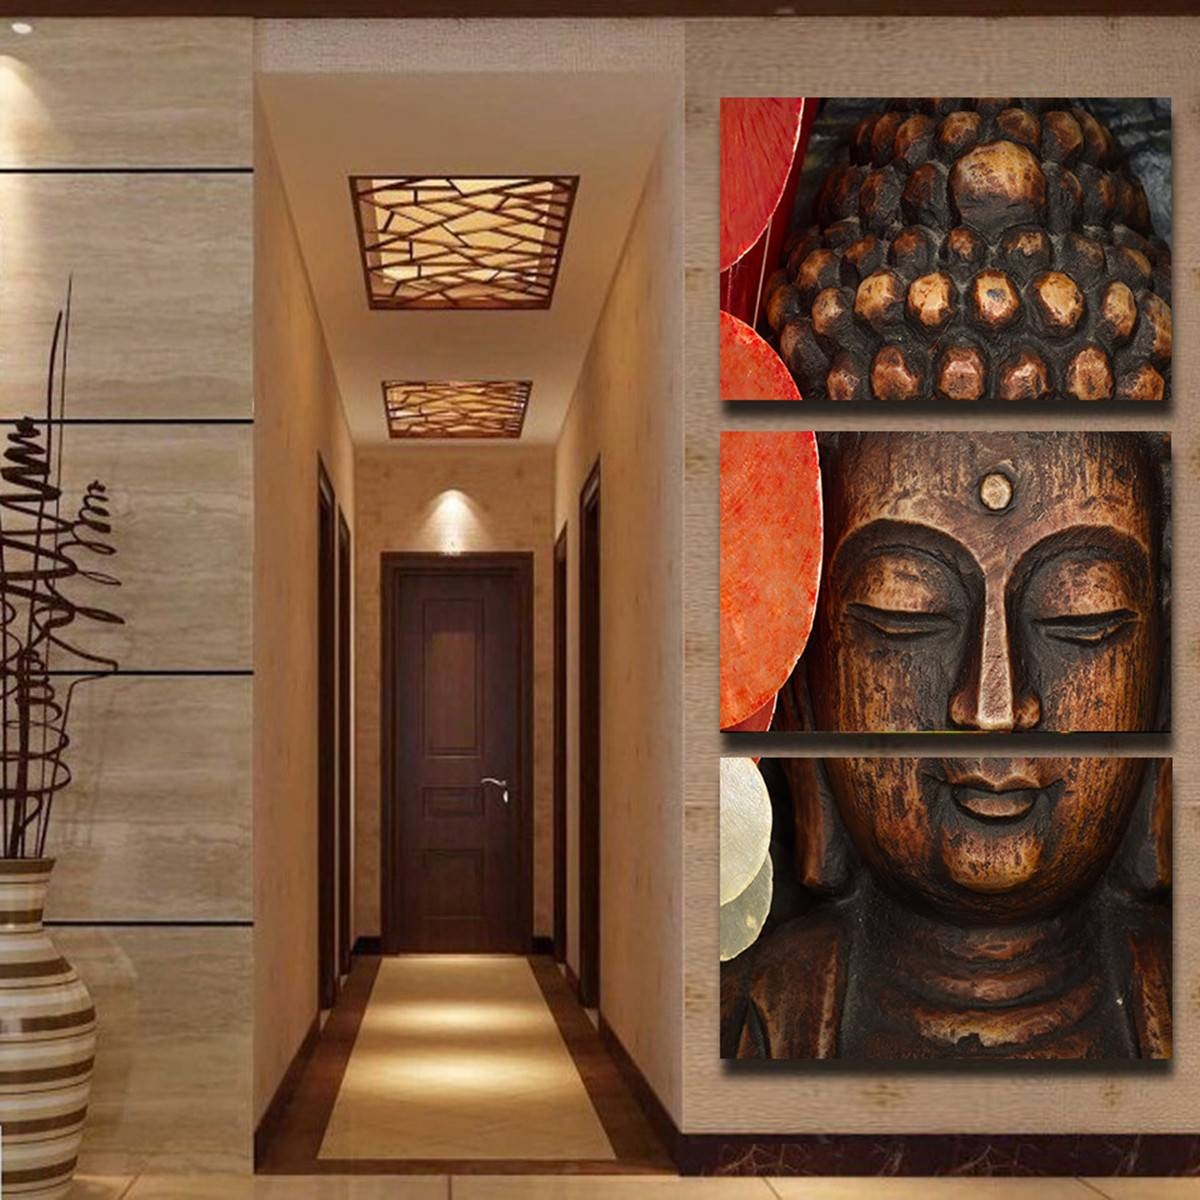 Jermyn 3 Piece Wall Art Diy 3d Buddha Oil Painting Hd Canvas Print Intended For Latest 3d Buddha Wall Art (View 2 of 20)